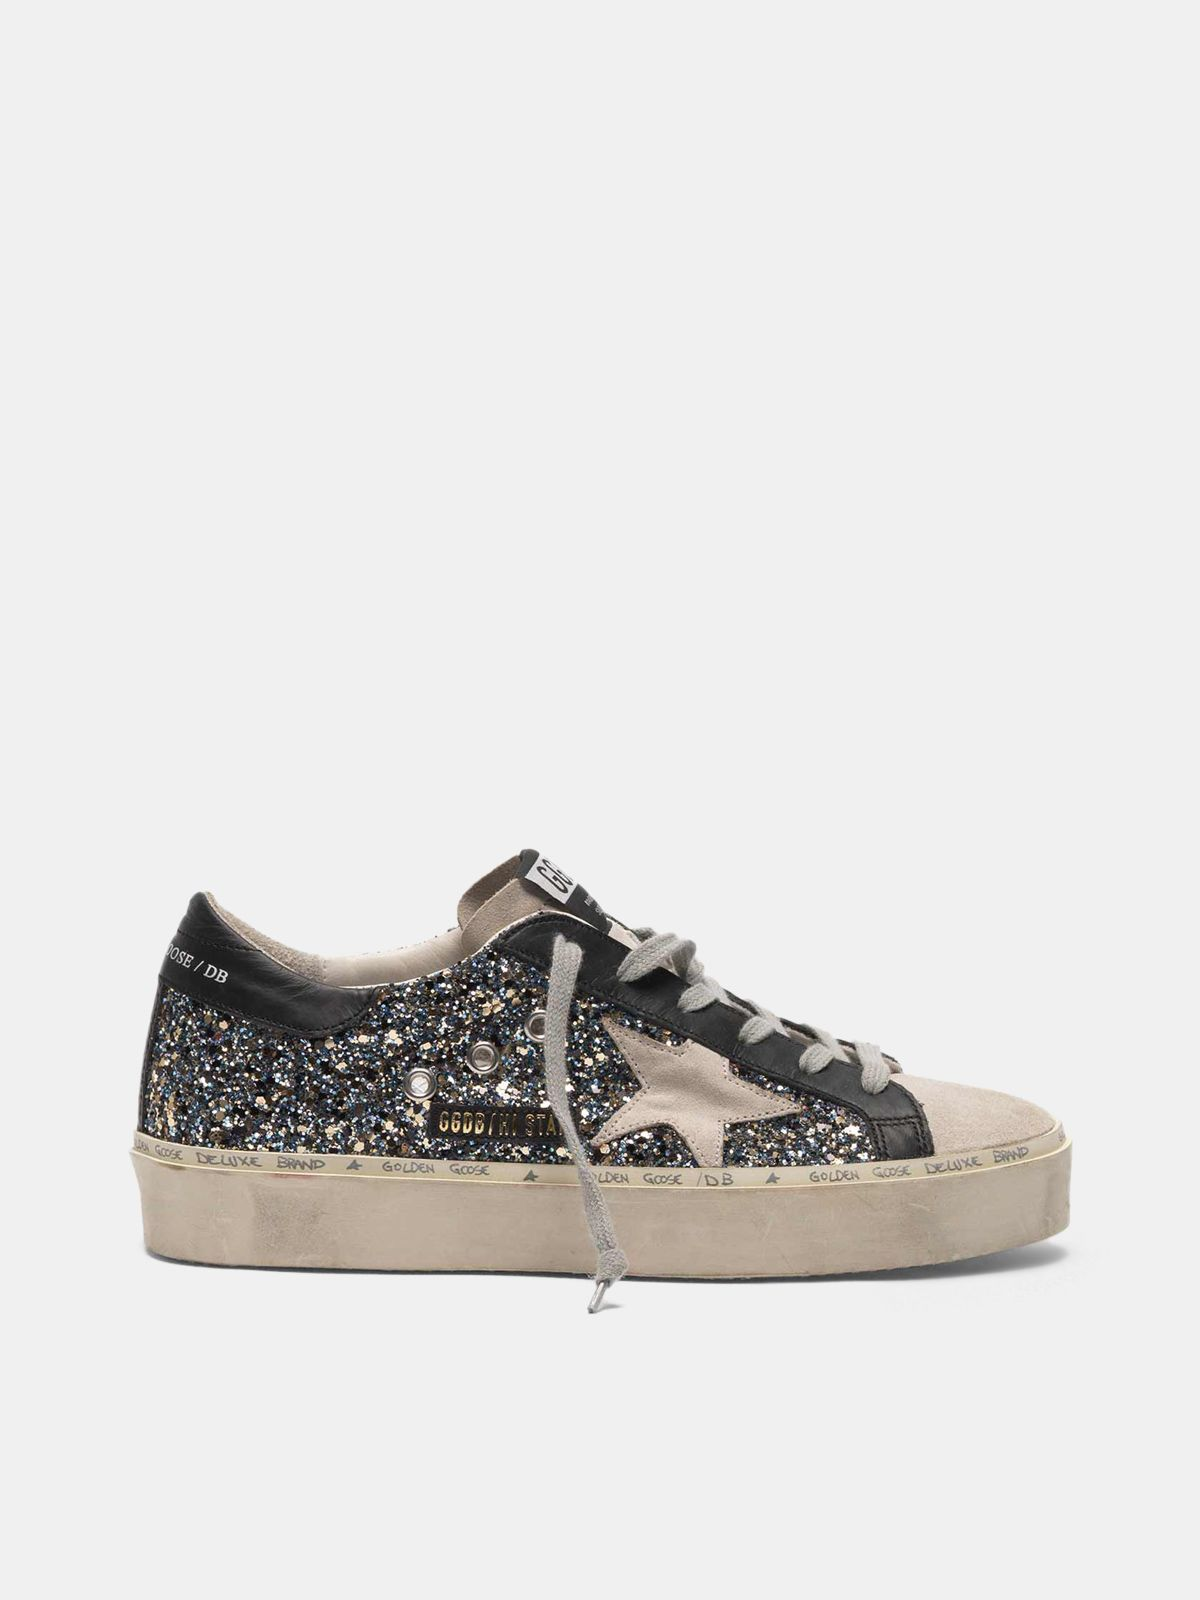 Golden Goose - Hi Star sneakers in glitter and suede leather in